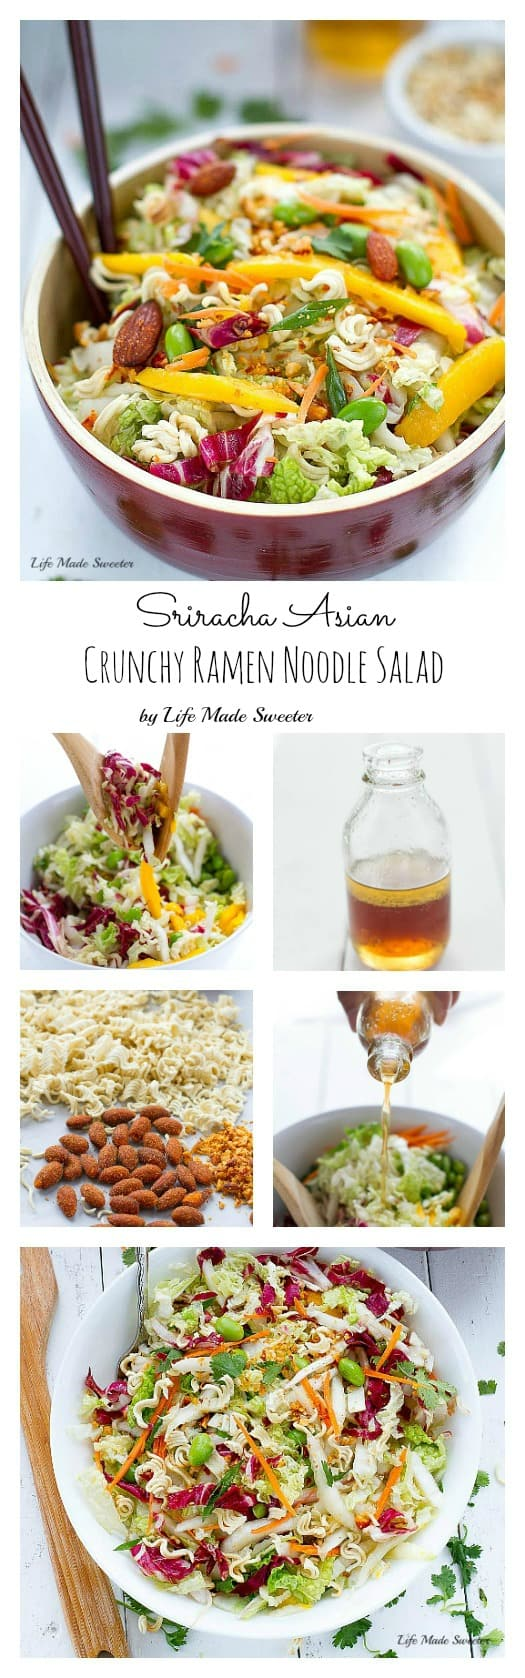 So simple, healthy & amazing! Restaurant quality made at home & perfect for potlucks & never any leftovers! aka Chinese Chicken Salad